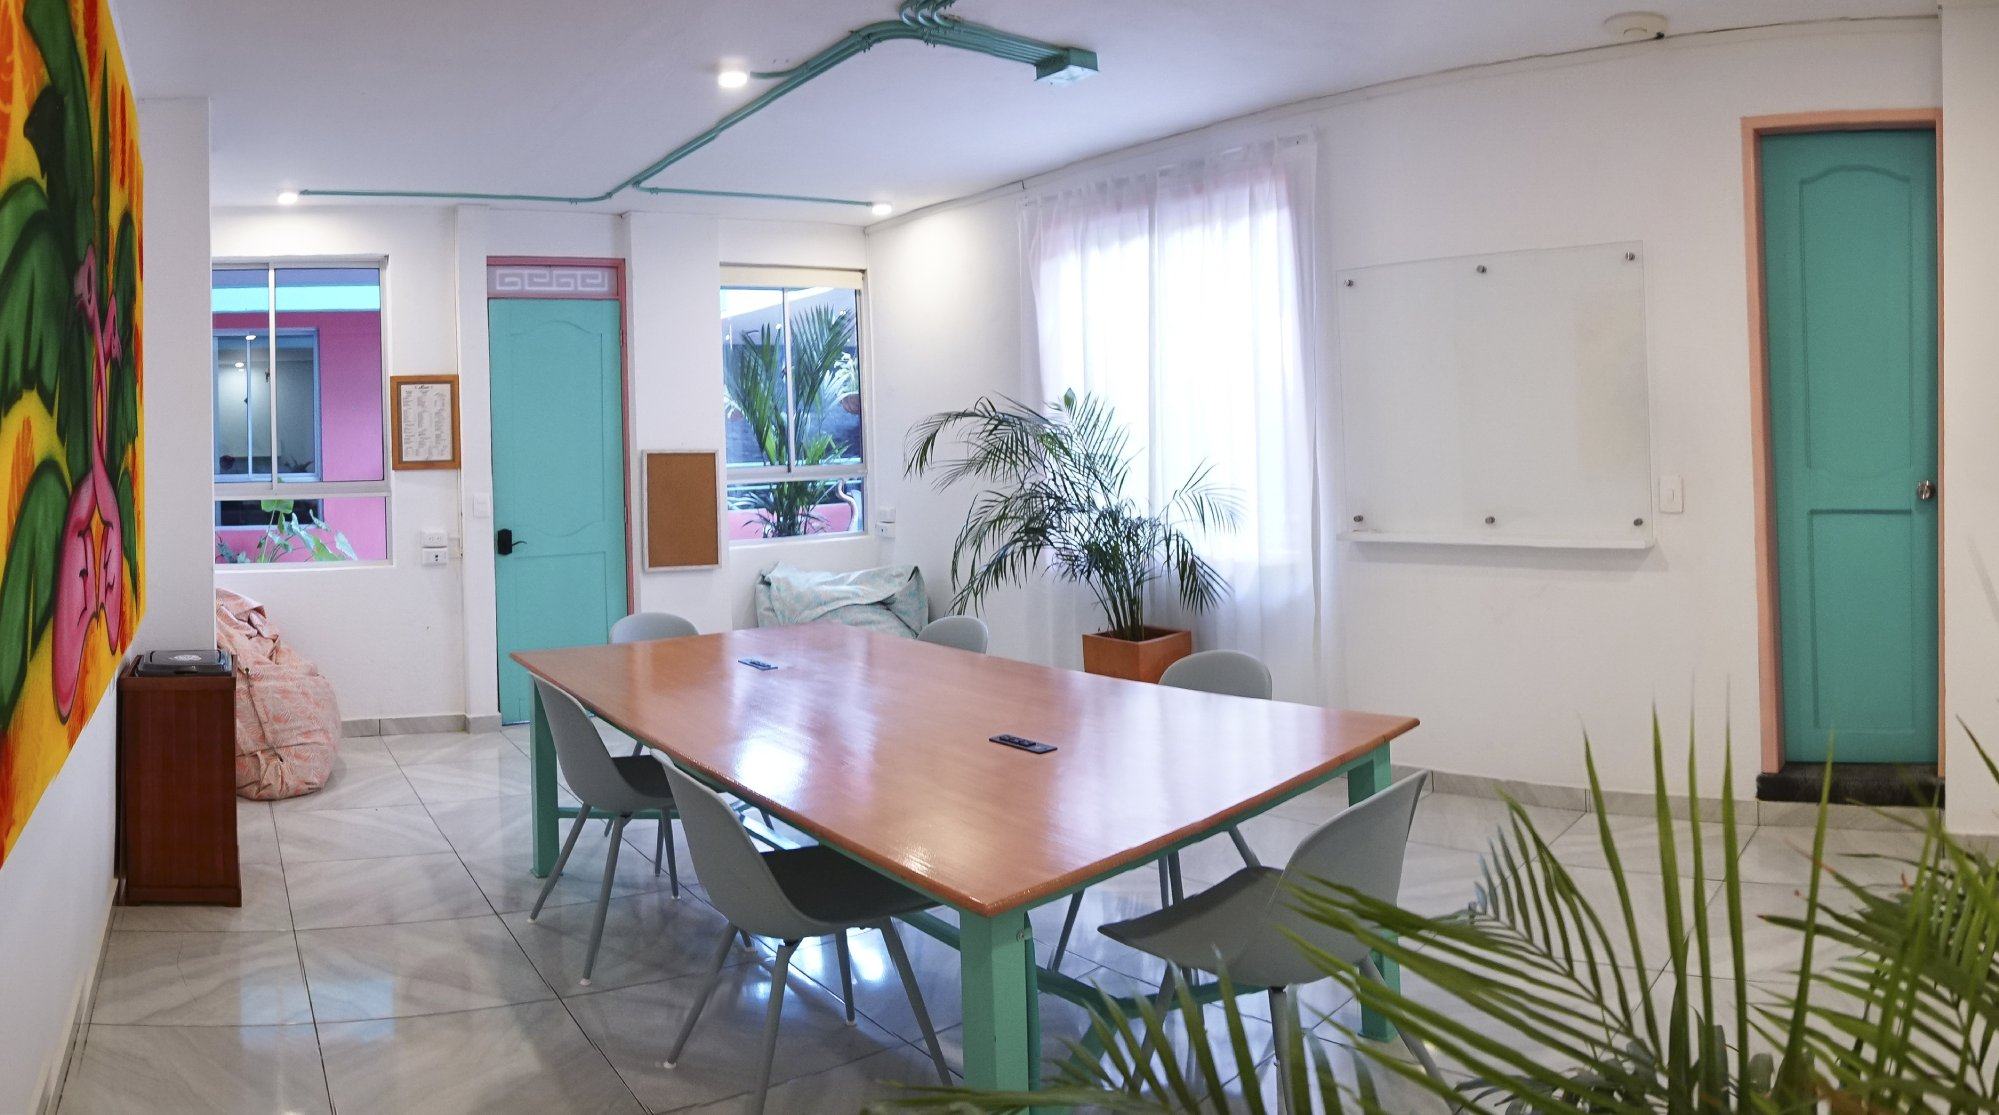 Meeting Room at Flamingo Coworking in Santa Marta Colombia